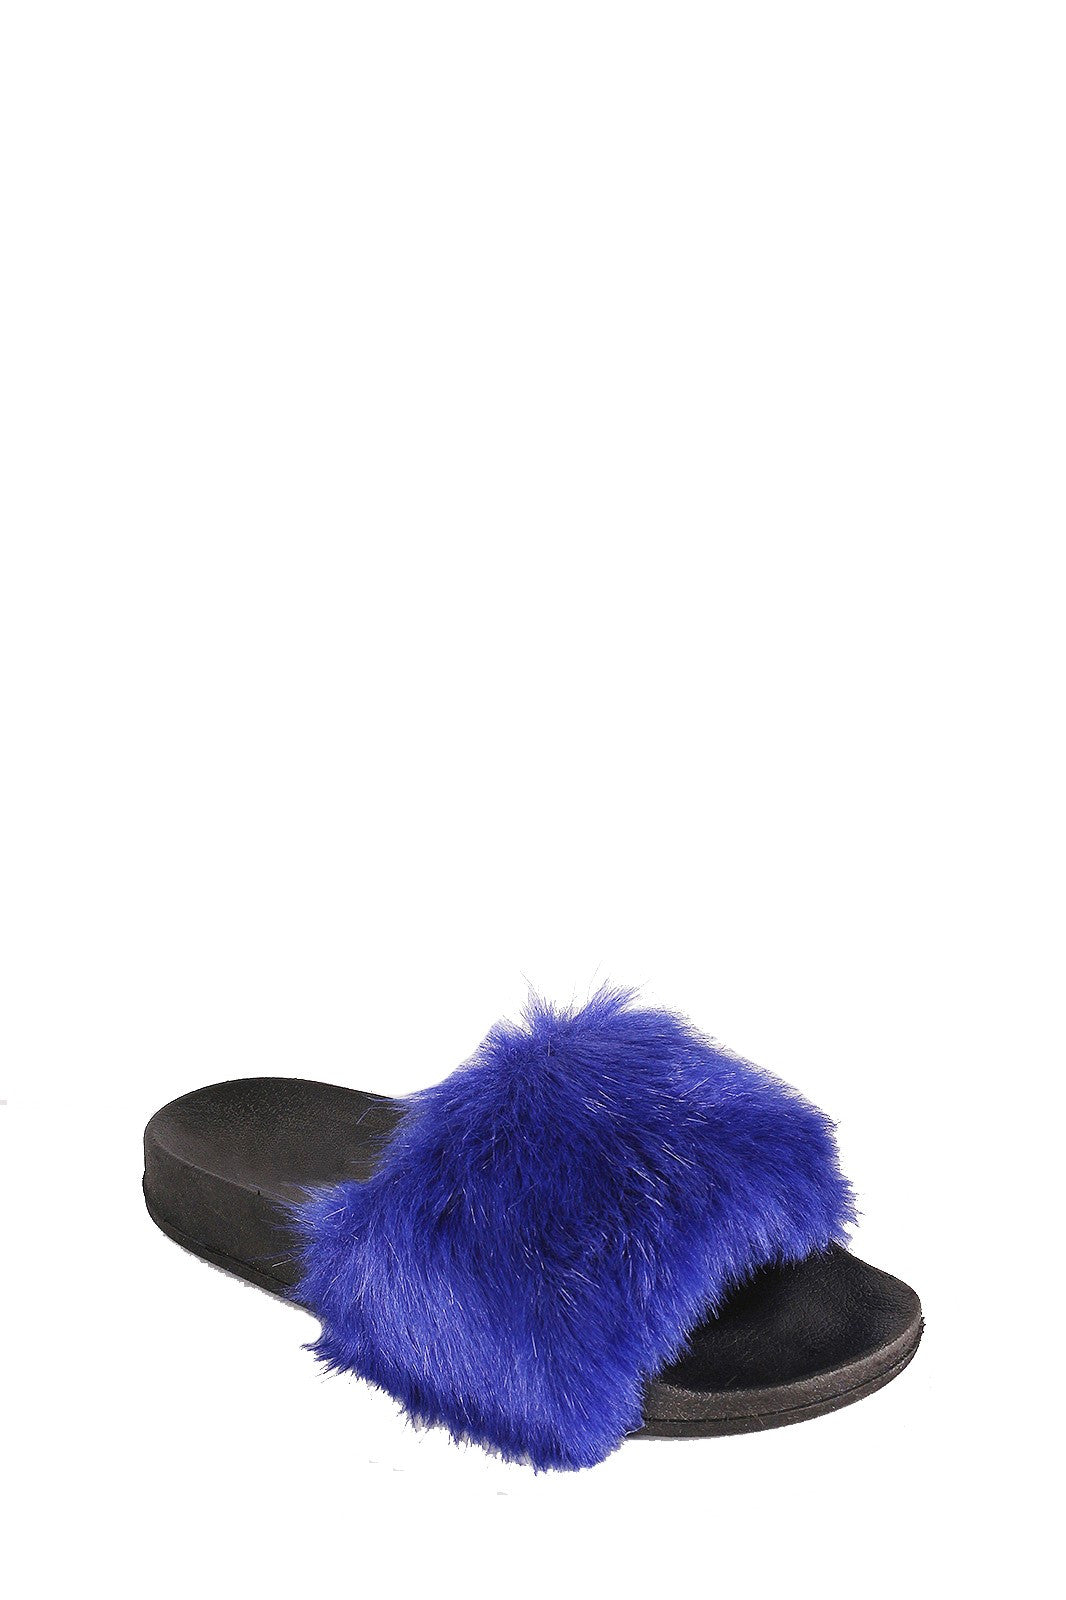 CherryMad Cape Robin Moira-5 Blue Women Flip Flop Fur Slide Slip On Flats Sandals Shoe Slipper Furry …